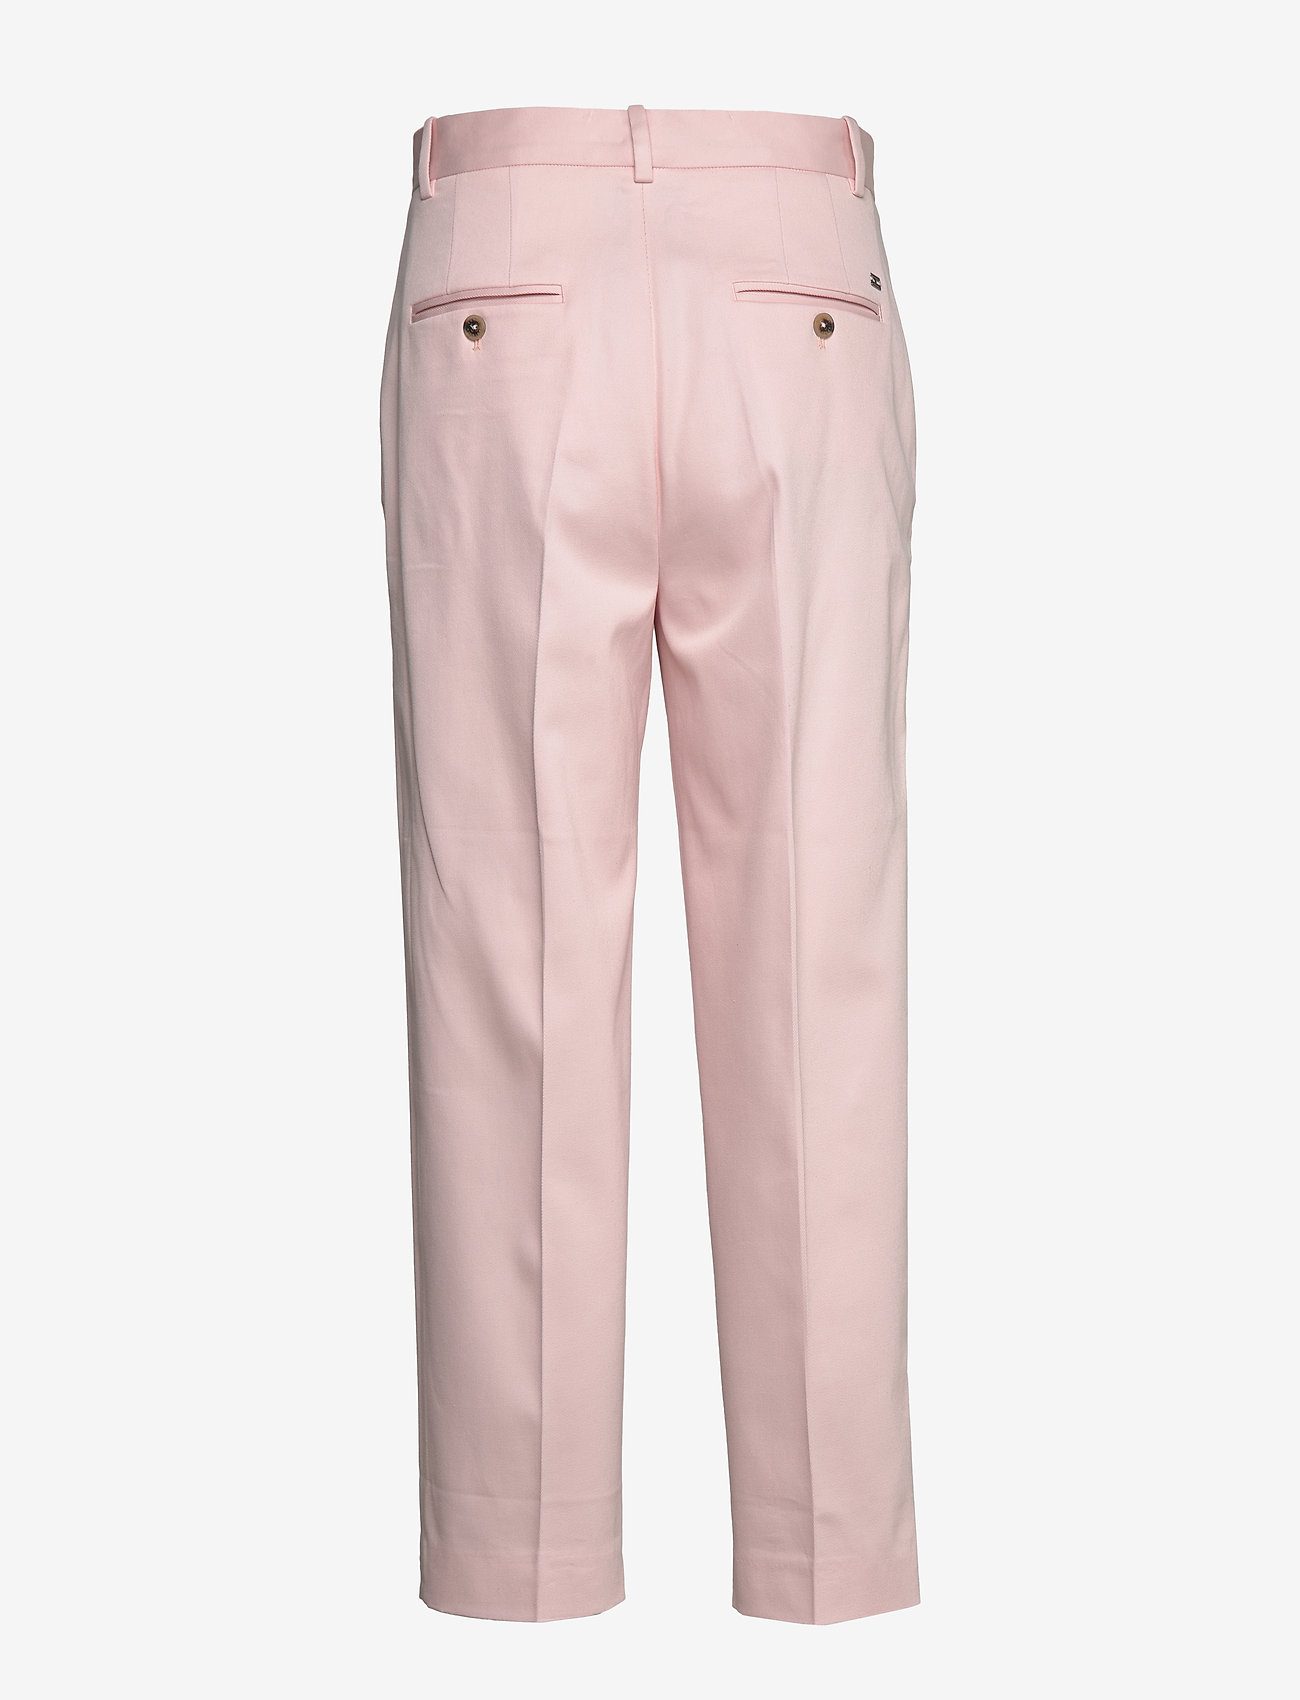 Tommy Hilfiger - COTTON PASTEL TAPERED PANT - straight leg trousers - pale pink - 1